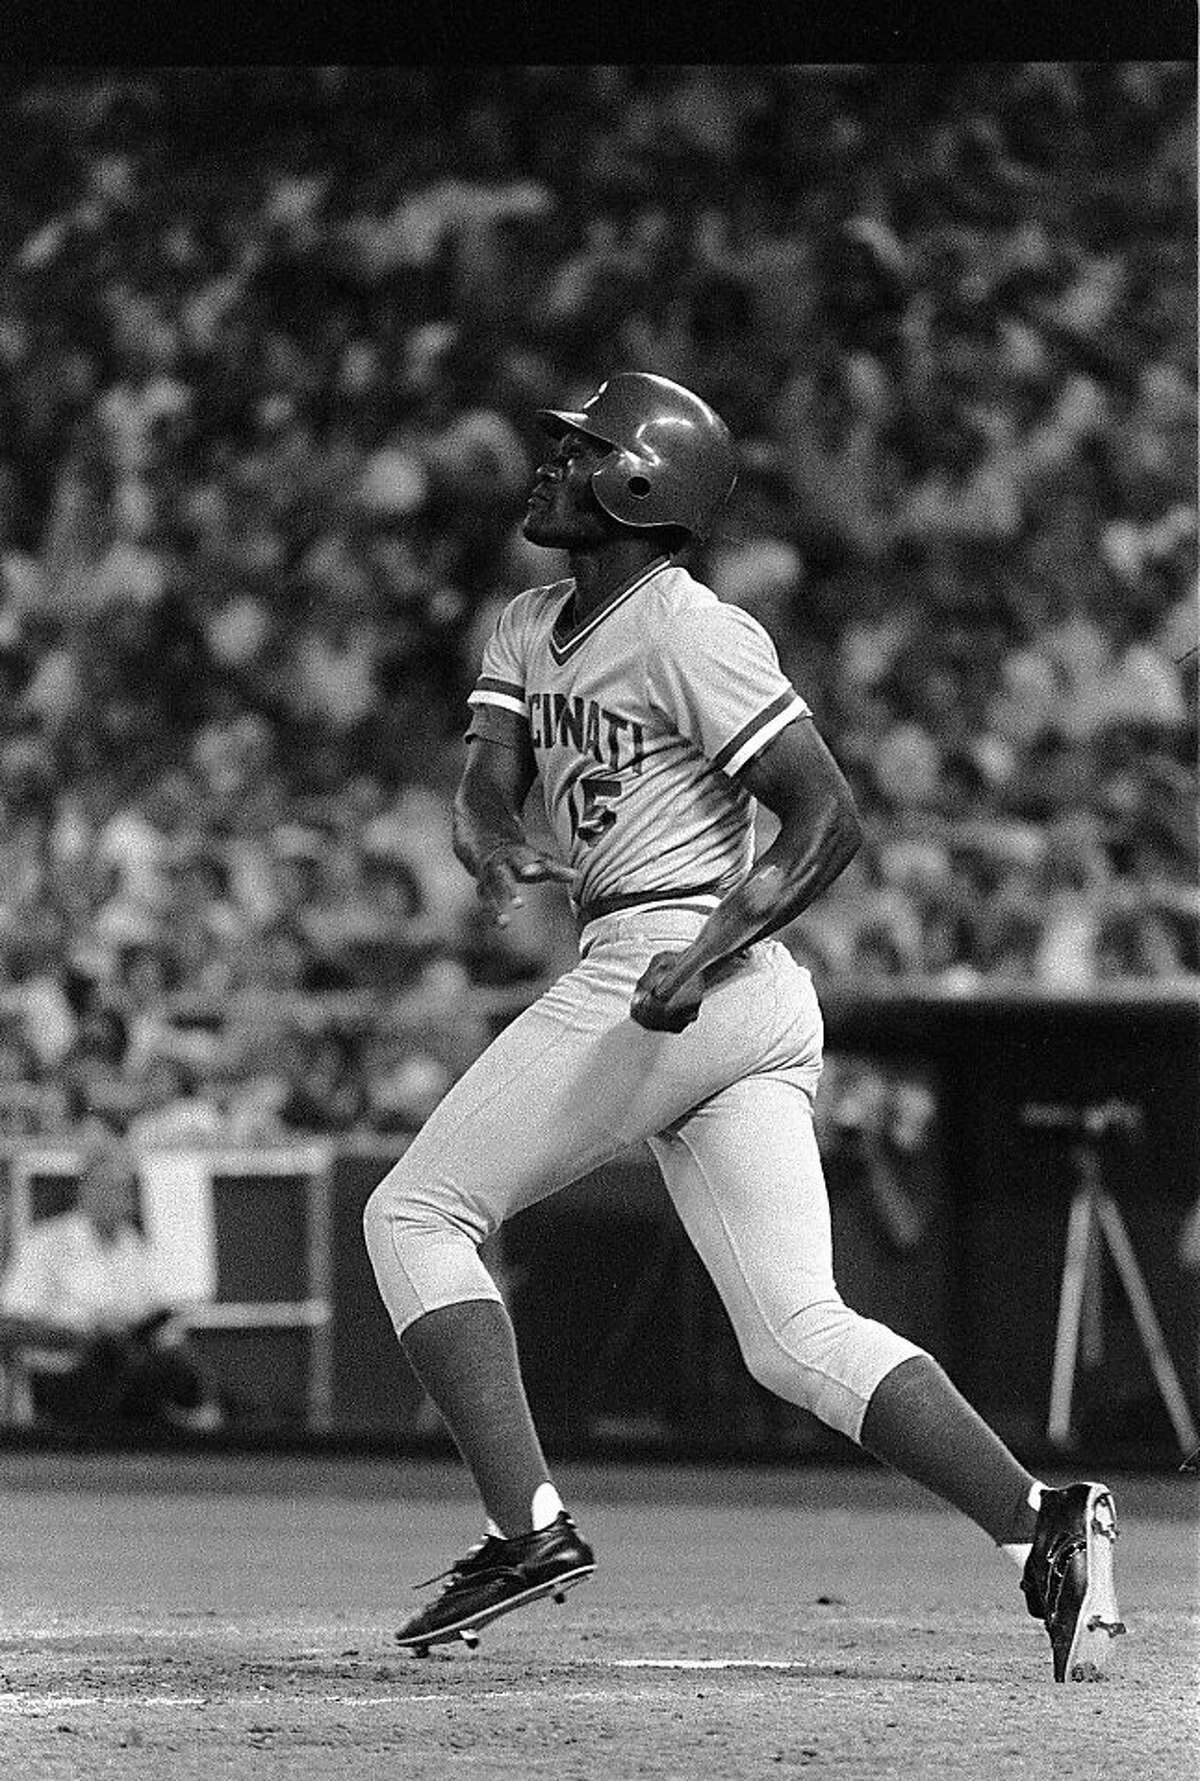 Cincinnati Reds George Foster pauses at the plate as he watches the ball on his grand slam home run in the 8th inning of July 20, 1978 night game in Philadelphia. It was Foster's 23rd home run of the season. The Reds won, 7-2. (AP Photo/rbk)